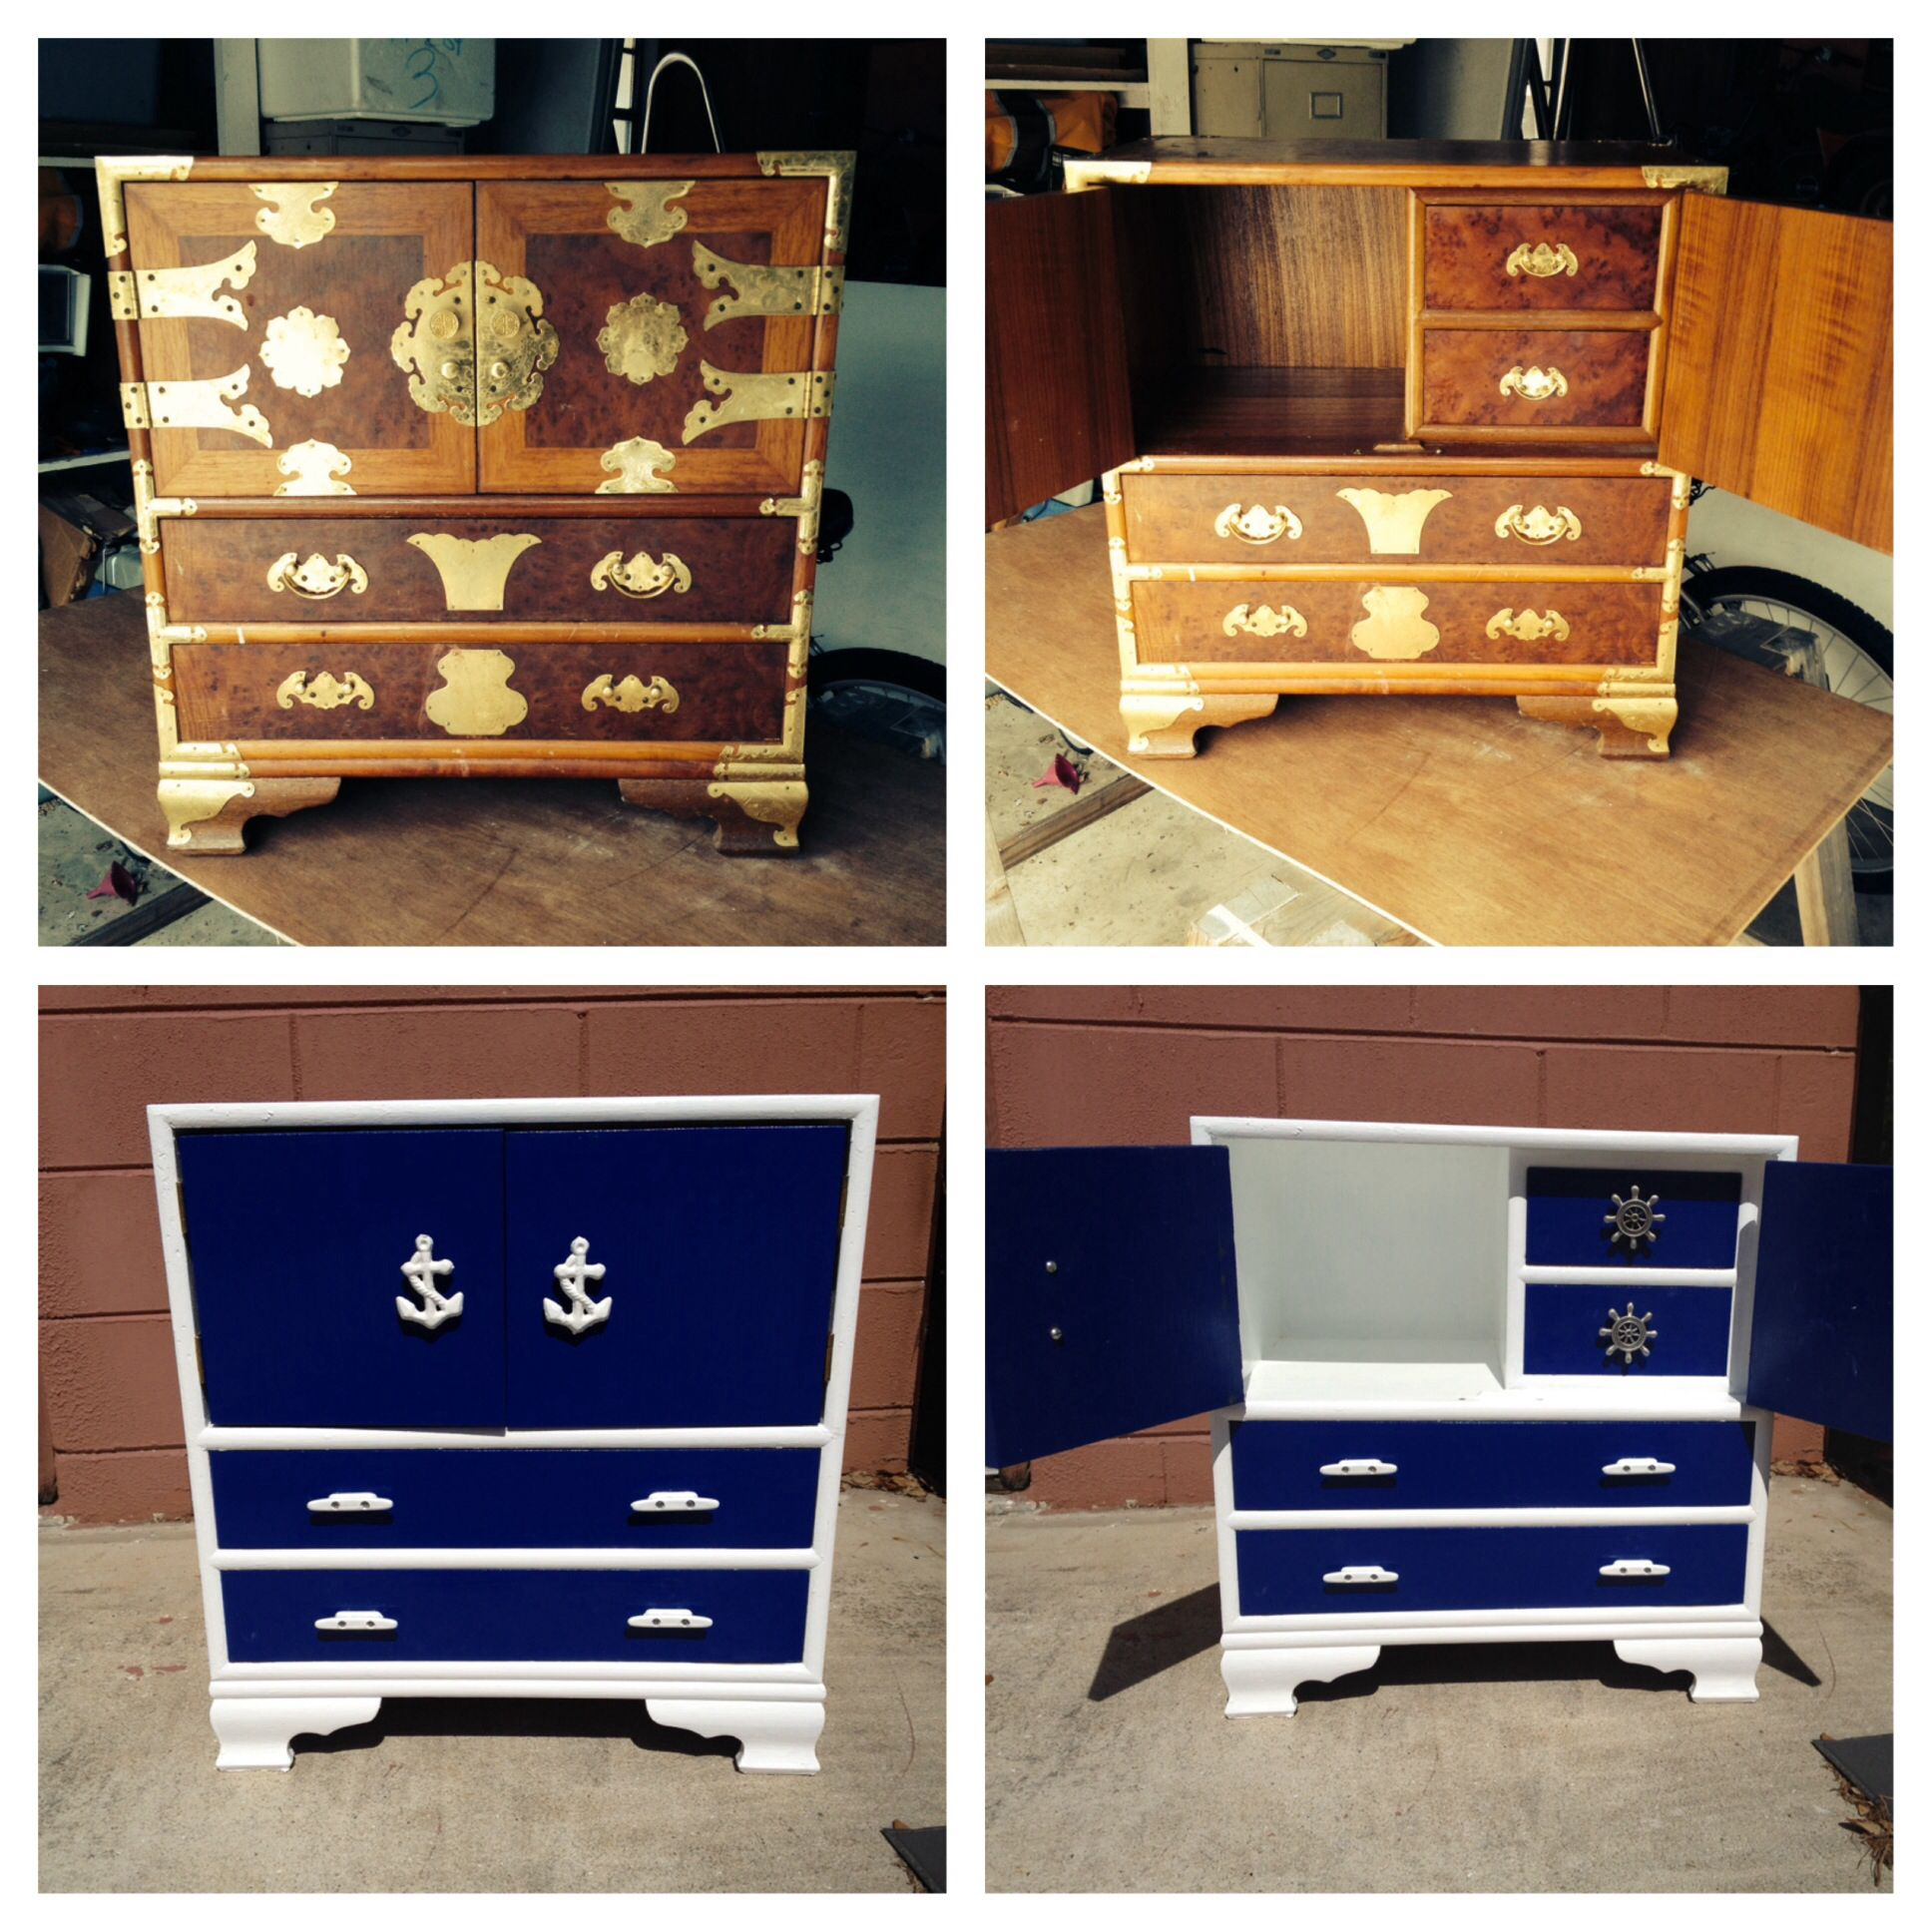 Nautical Themed Nightstand Transformation Behr Sailboat Blue And High Gloss White Boat Cleats Pewter Ships Whe Nautical Theme Boat Cleats High Gloss White